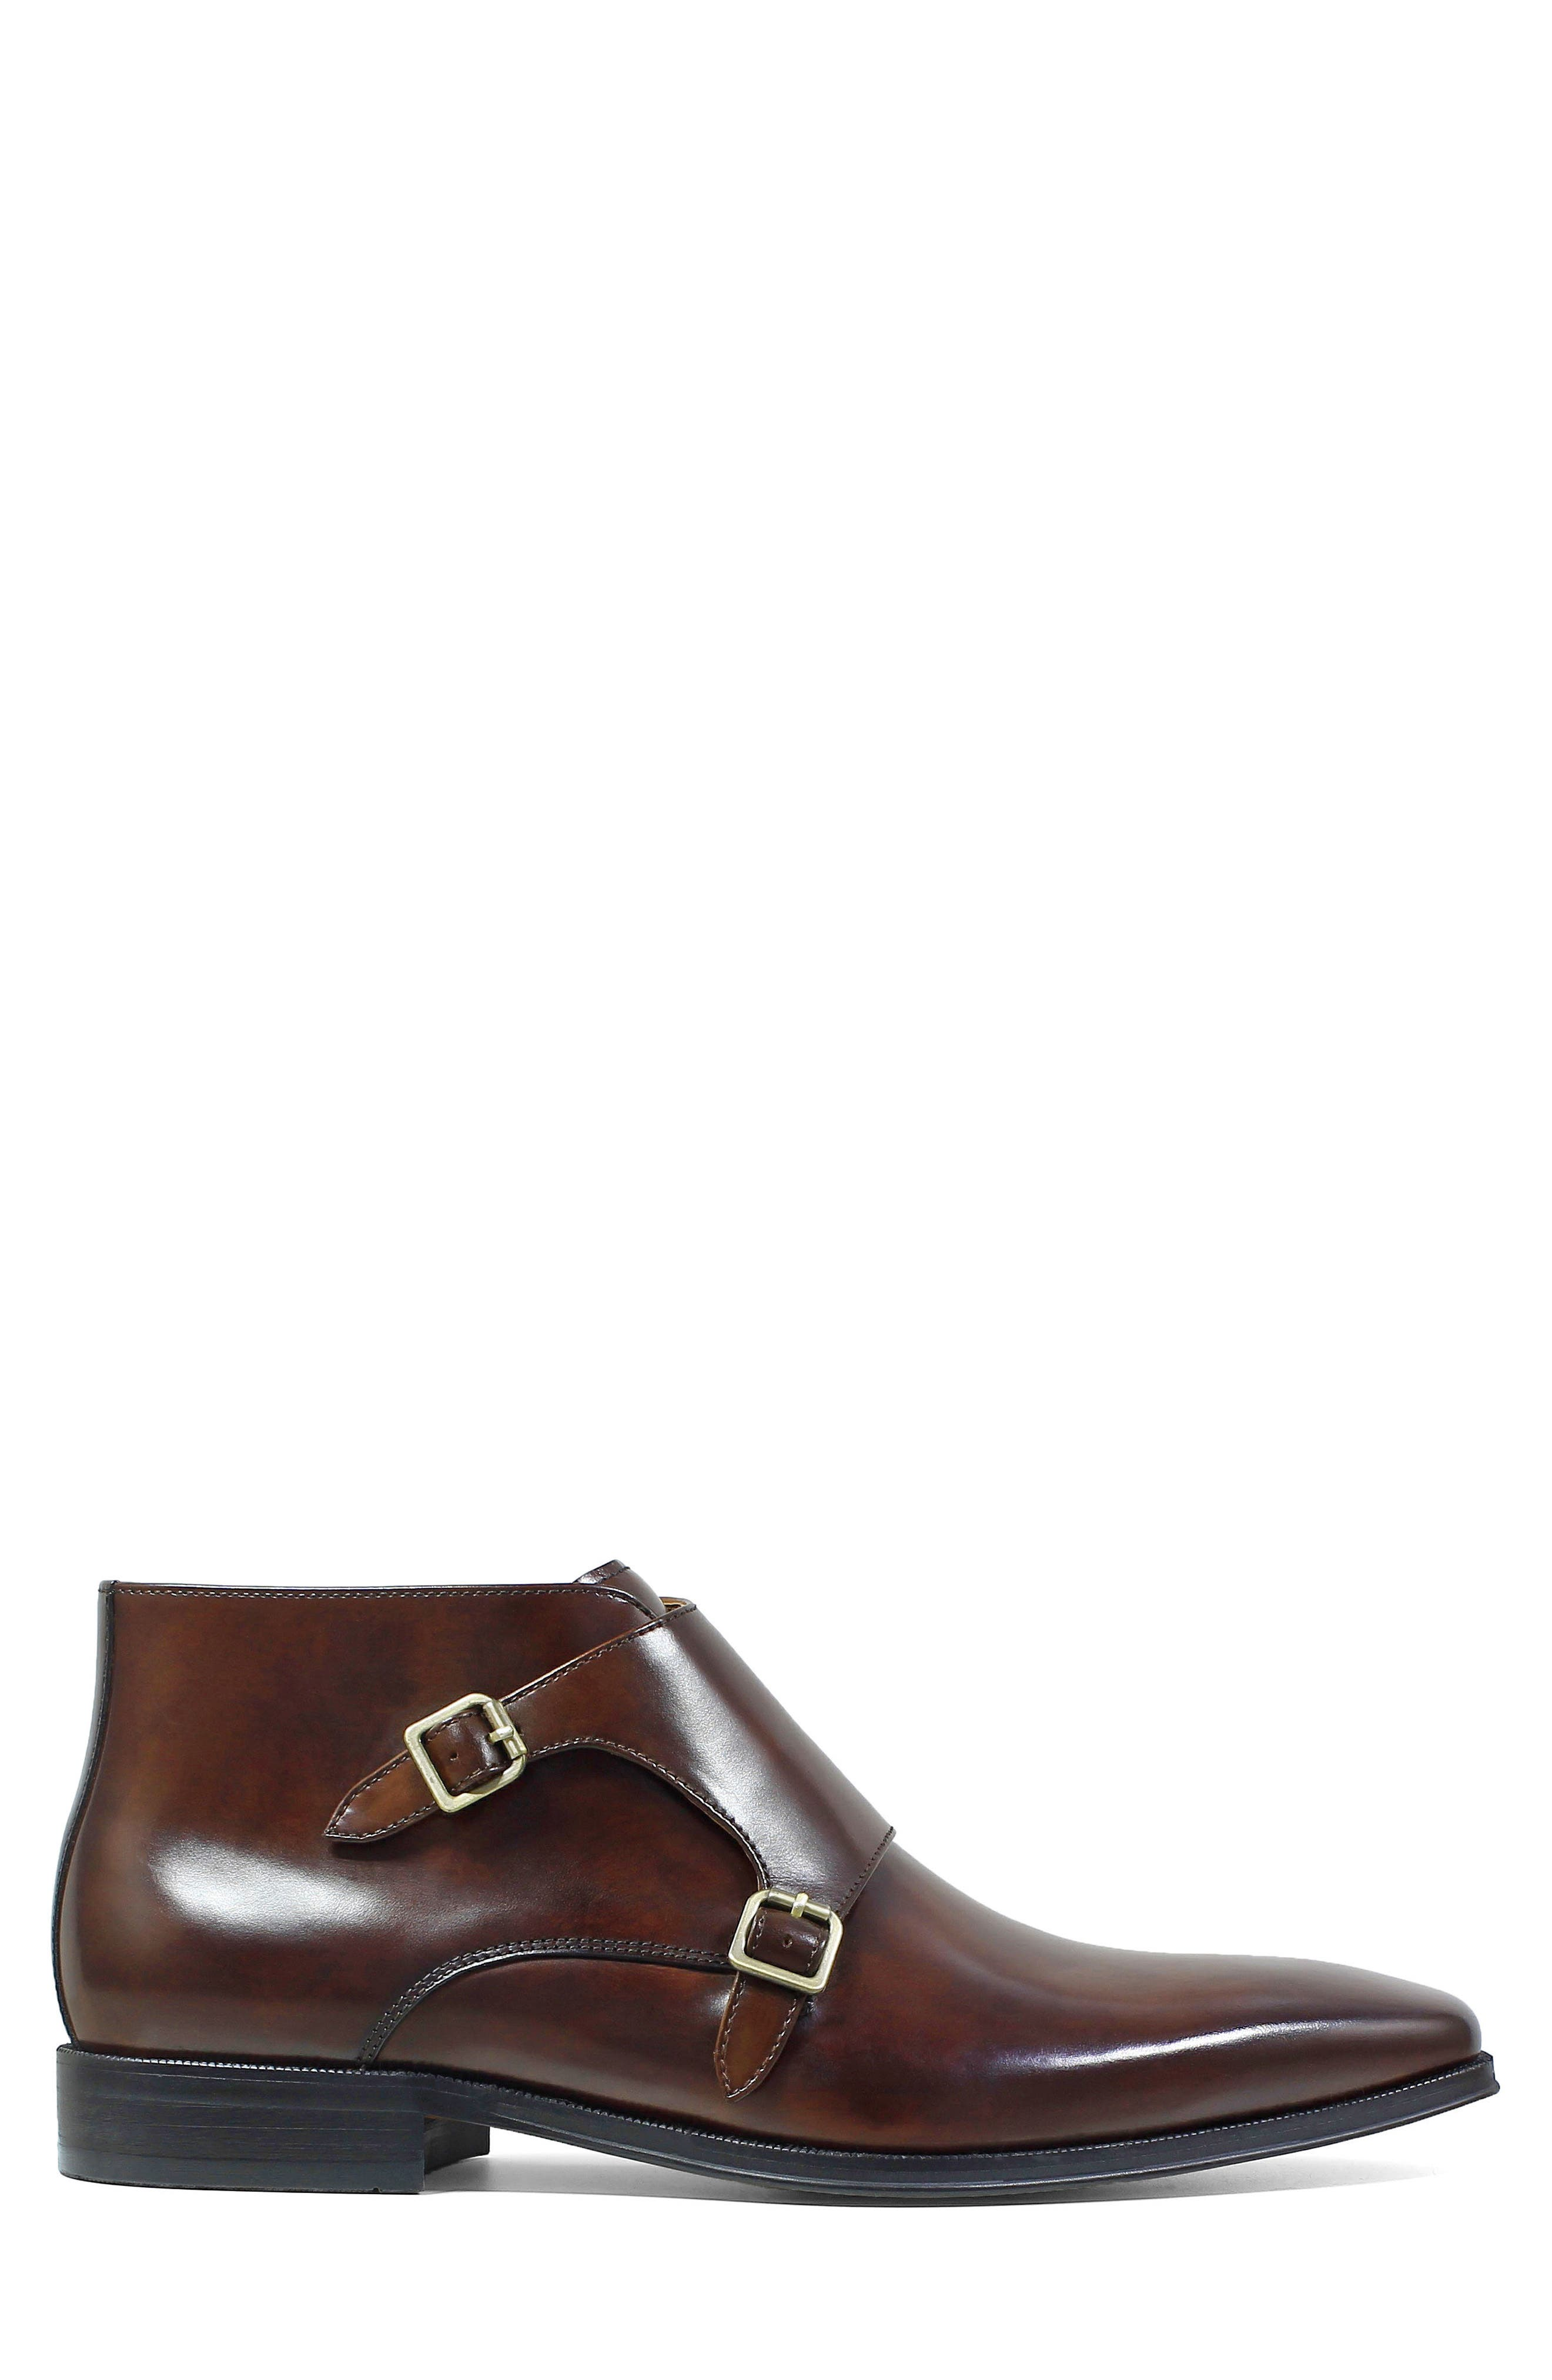 Belfast Double Monk Strap Boot,                             Alternate thumbnail 3, color,                             Brown Leather